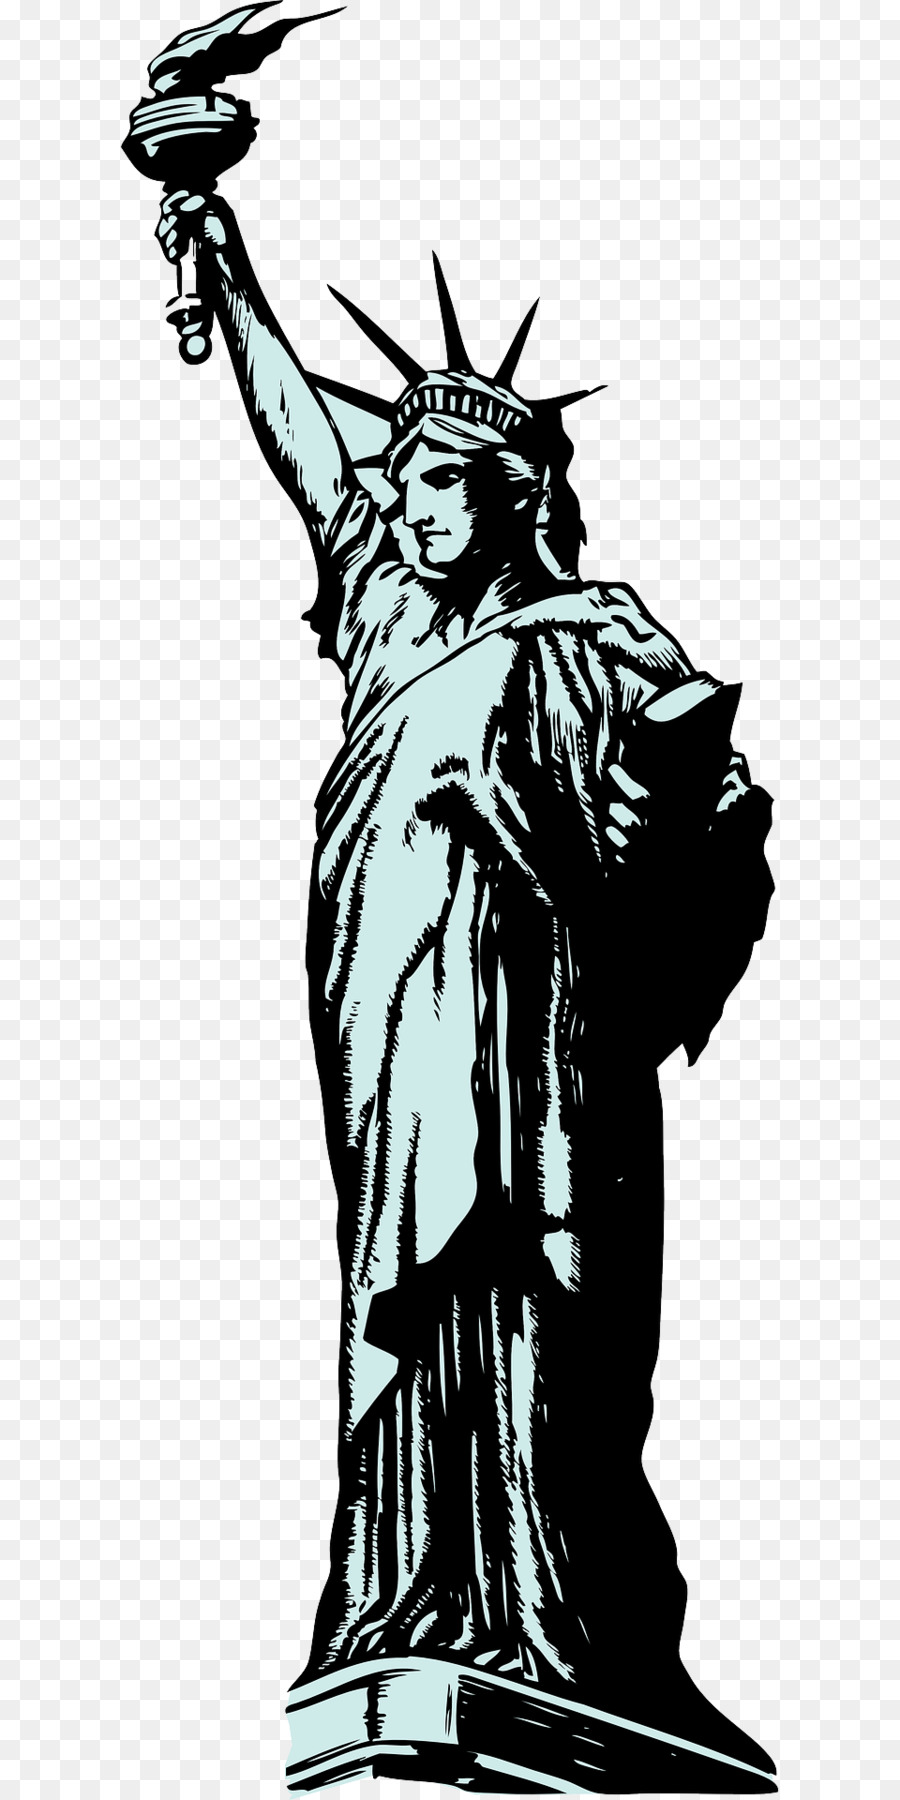 statue of liberty clip art the torch of the goddess png download rh kisspng com statue of liberty clip art images statue of liberty clipart black and white